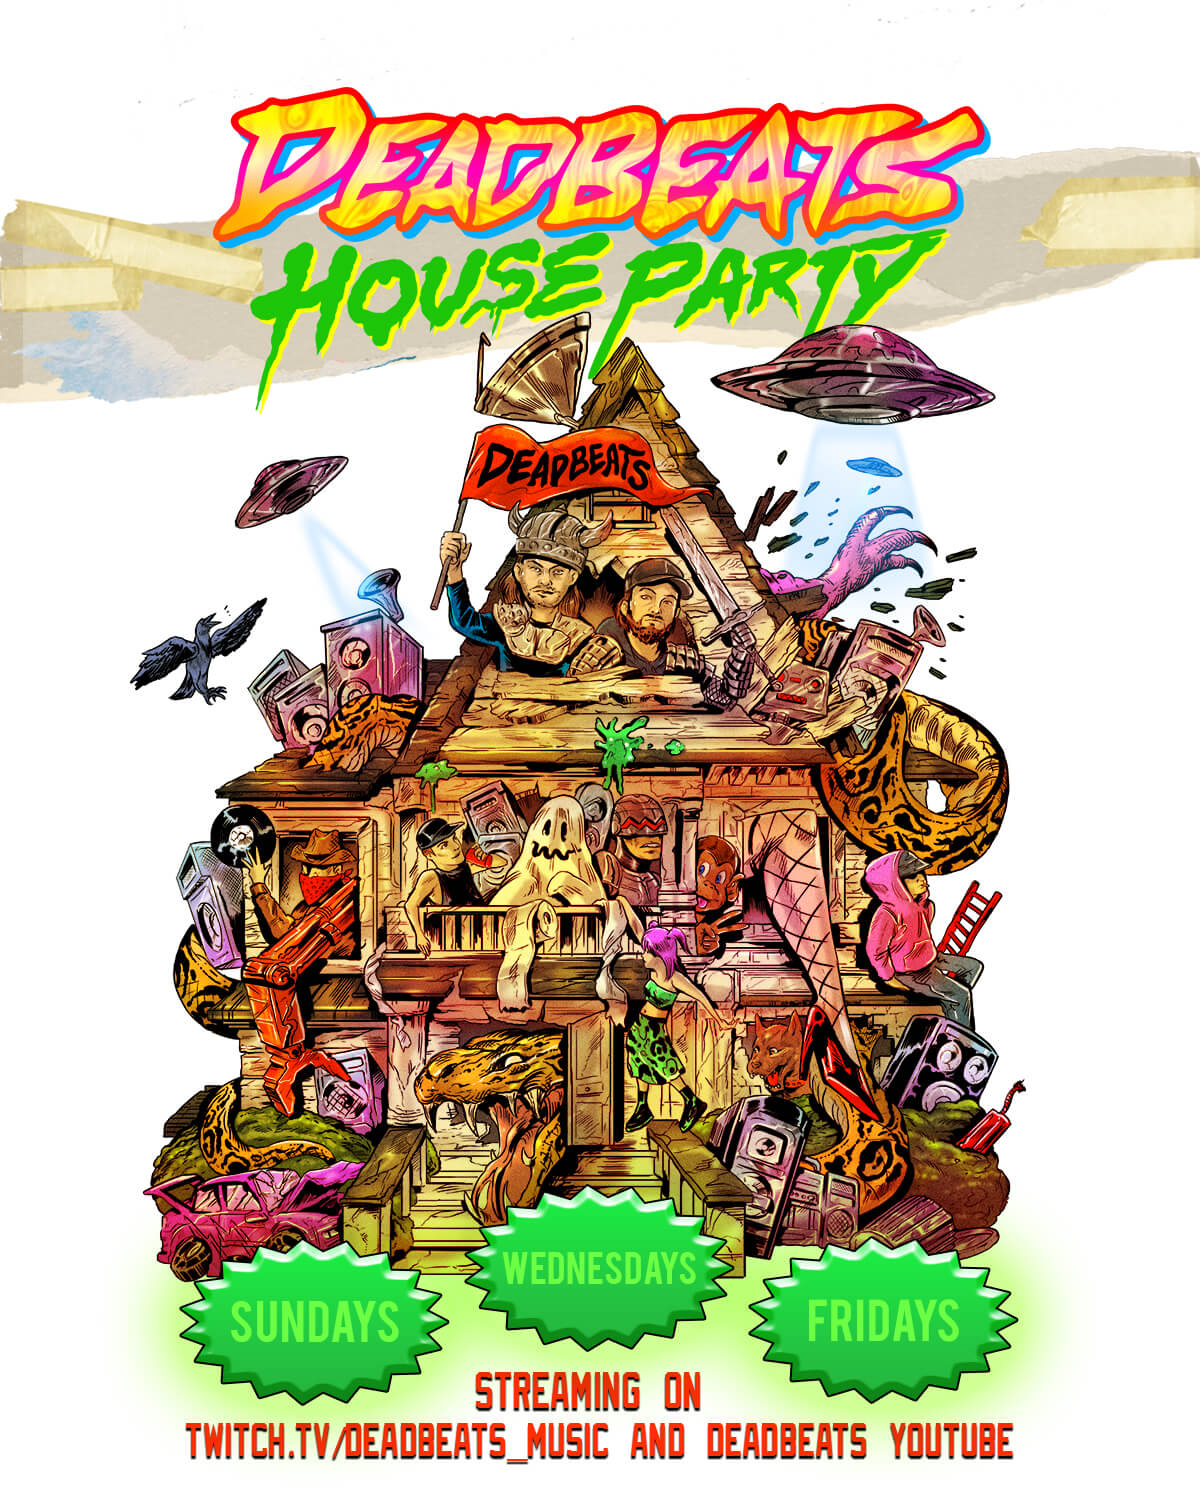 DeadBeats House Party